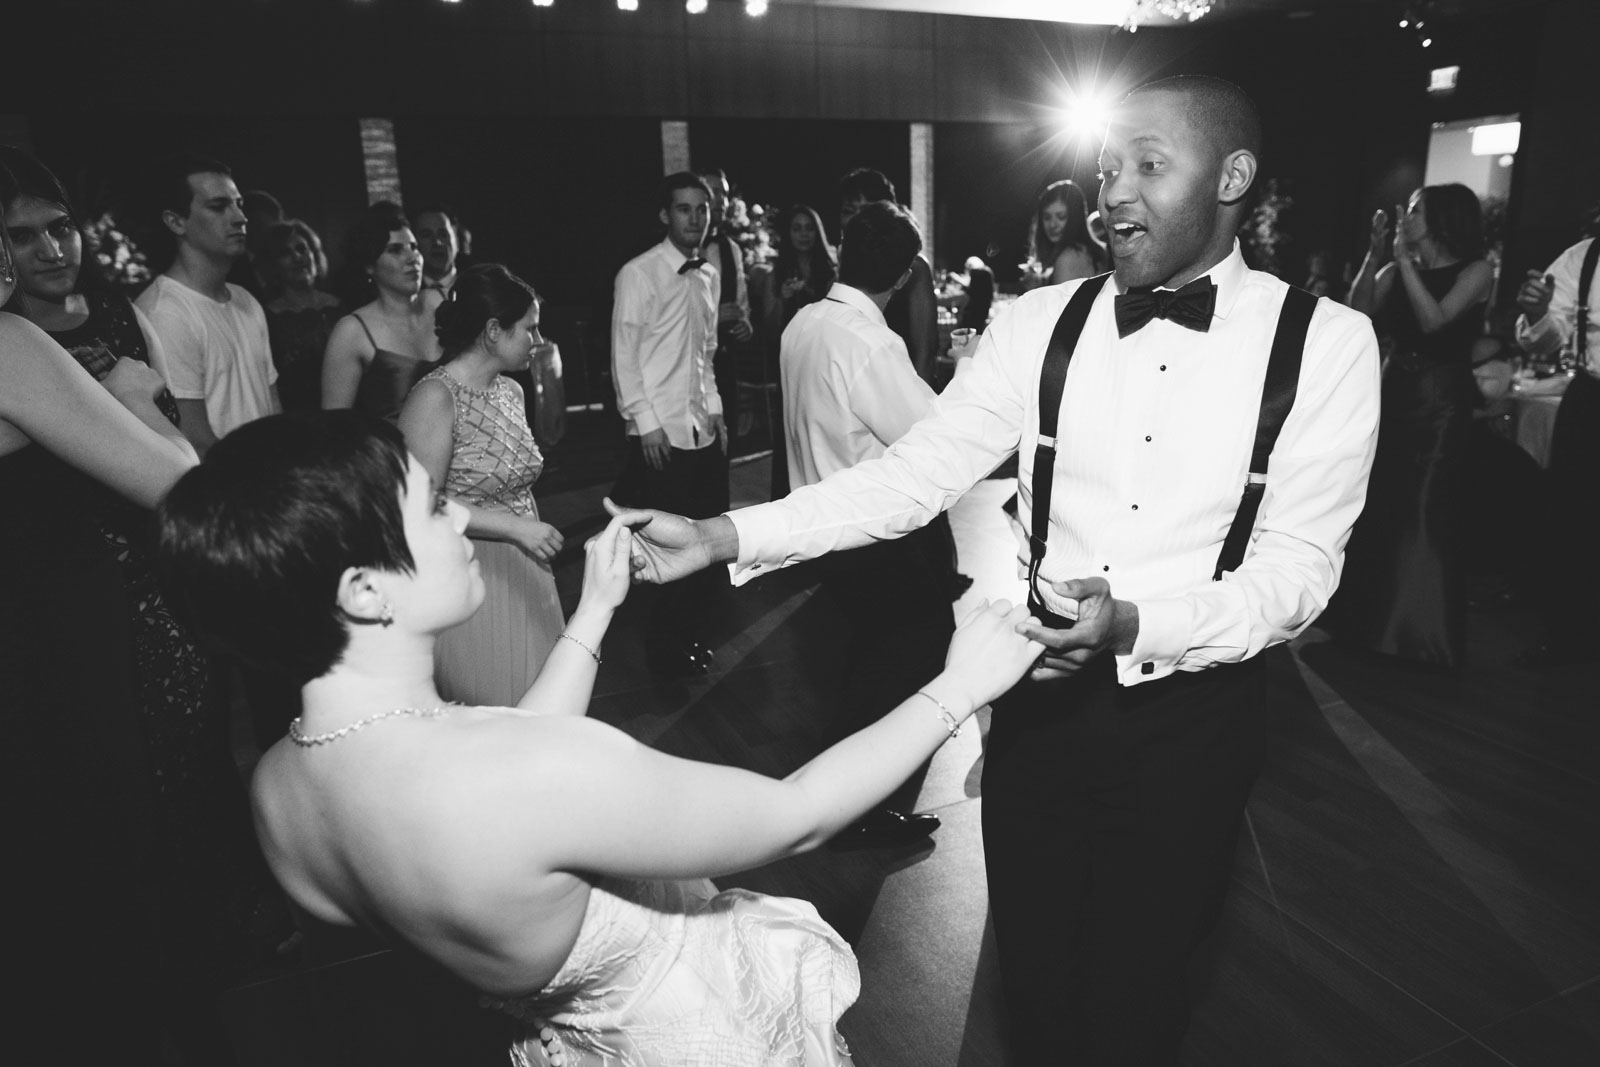 Black and white dance floor shot, bride and groom dancing together at interracial wedding reception